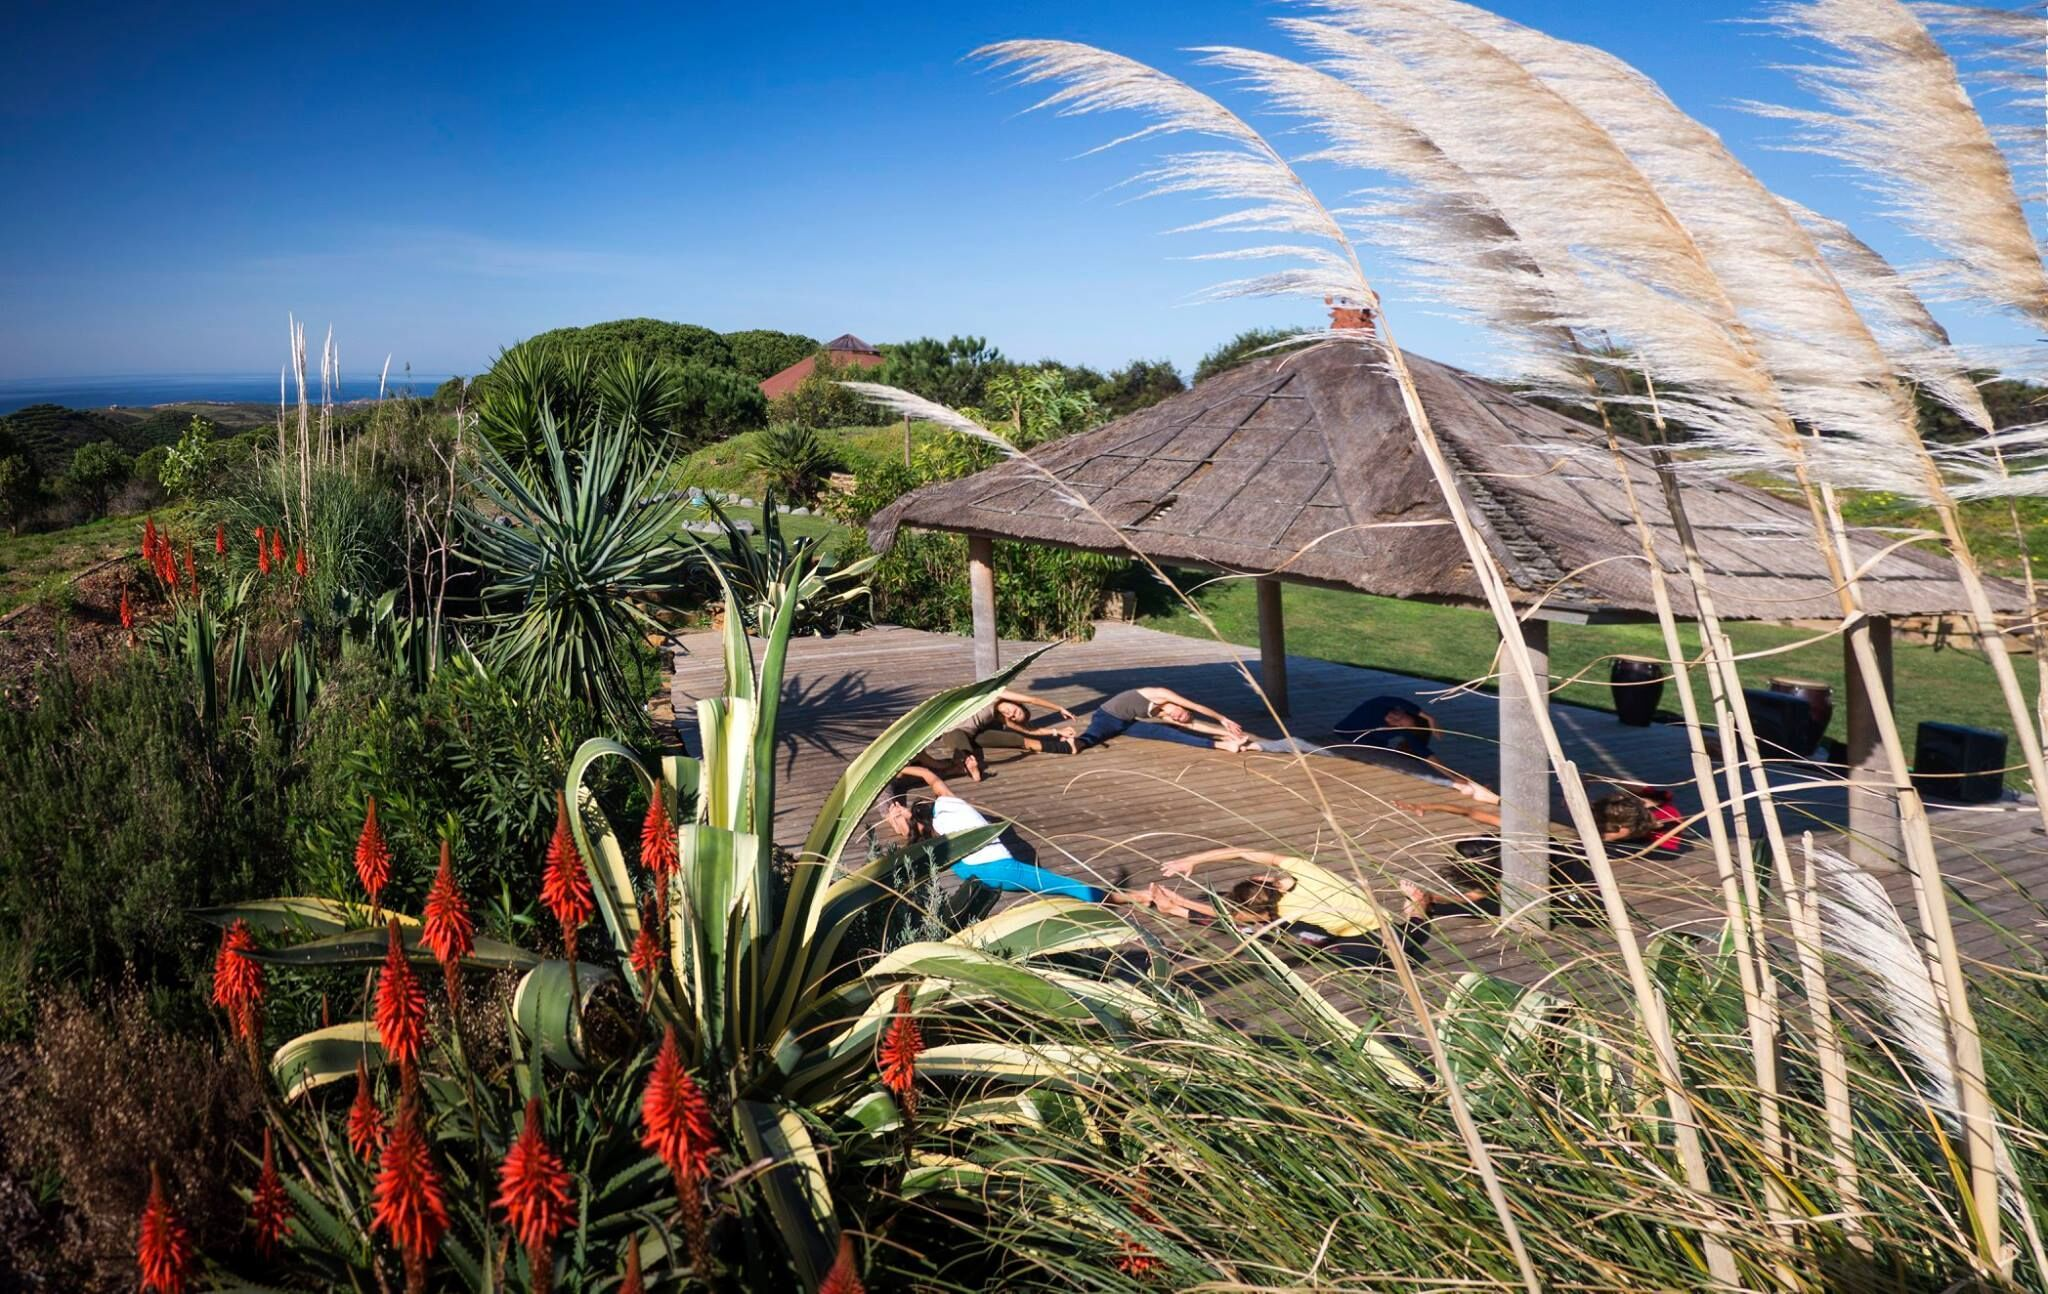 Spring time, the energising season, Nature's way of saying 'let's do it'! Get into the healthy path with our Yoga & Nutrition Getaway, 19th-22nd of May! info@montevelhoecoretreats.com